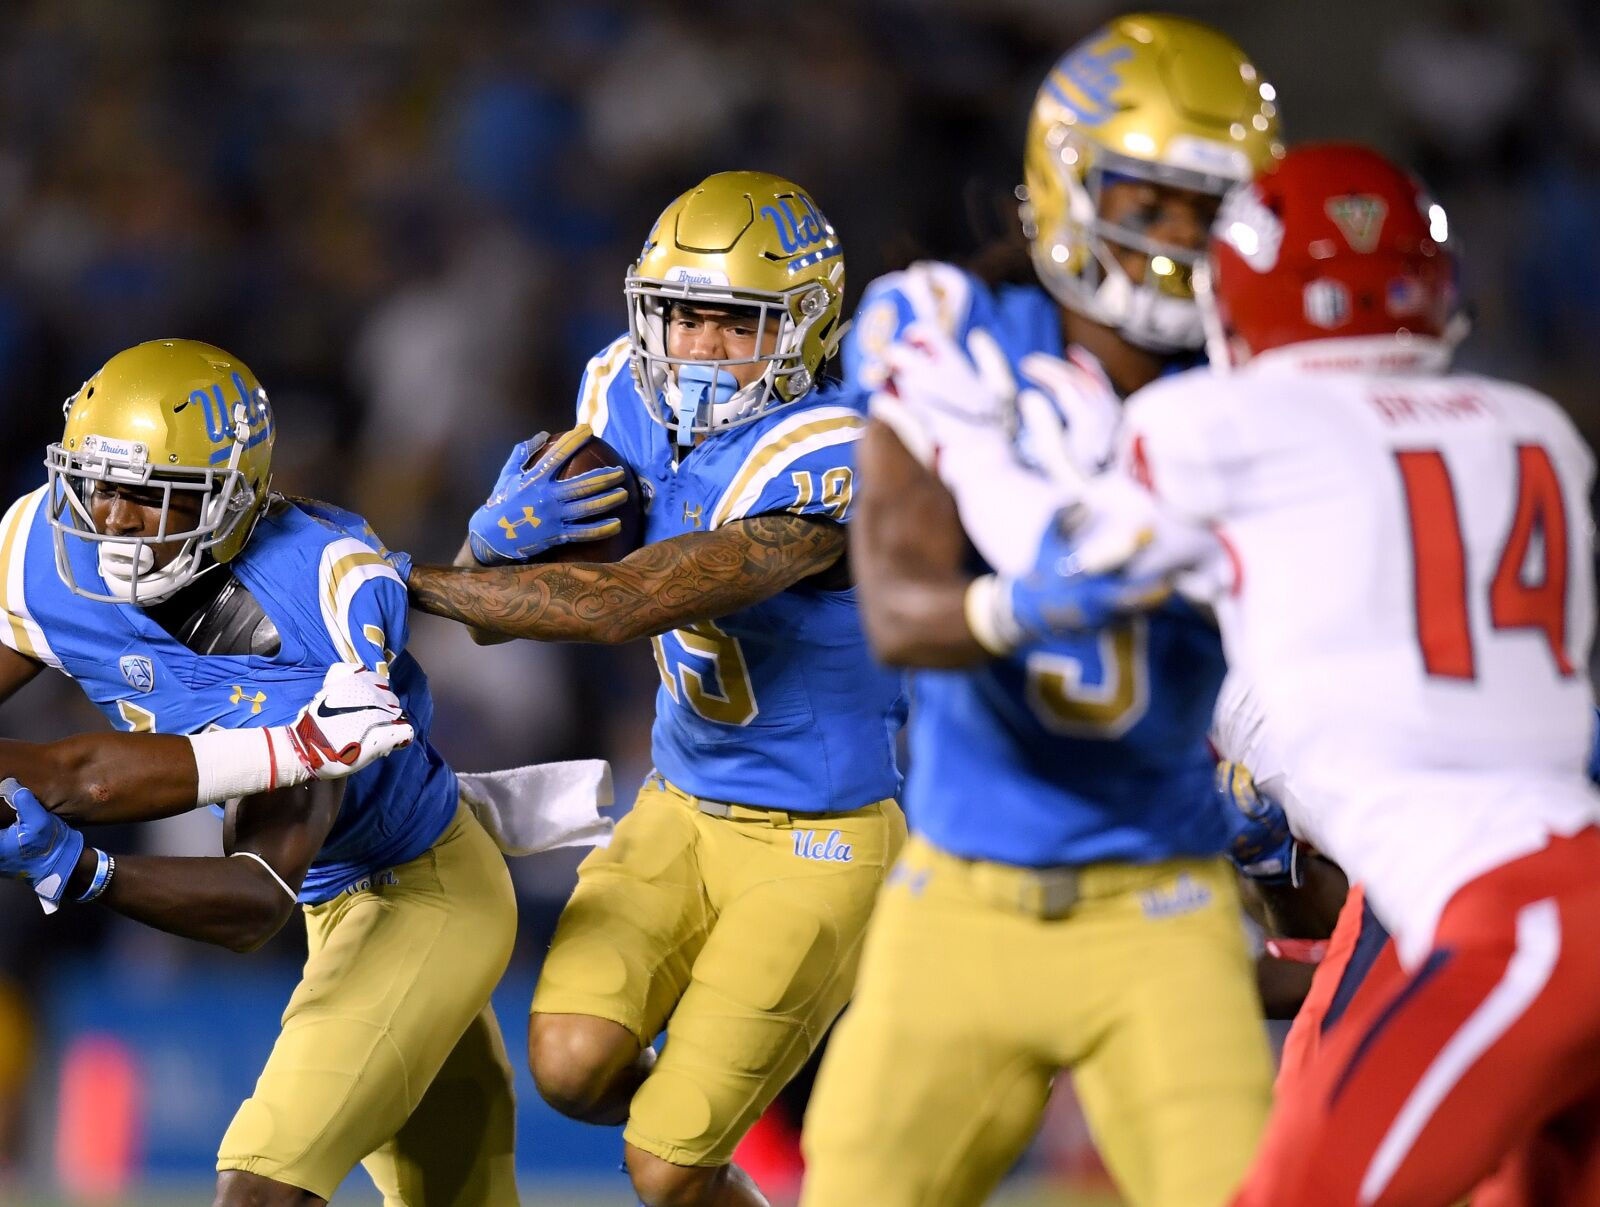 UCLA Football: How the running game could evolve in 2019